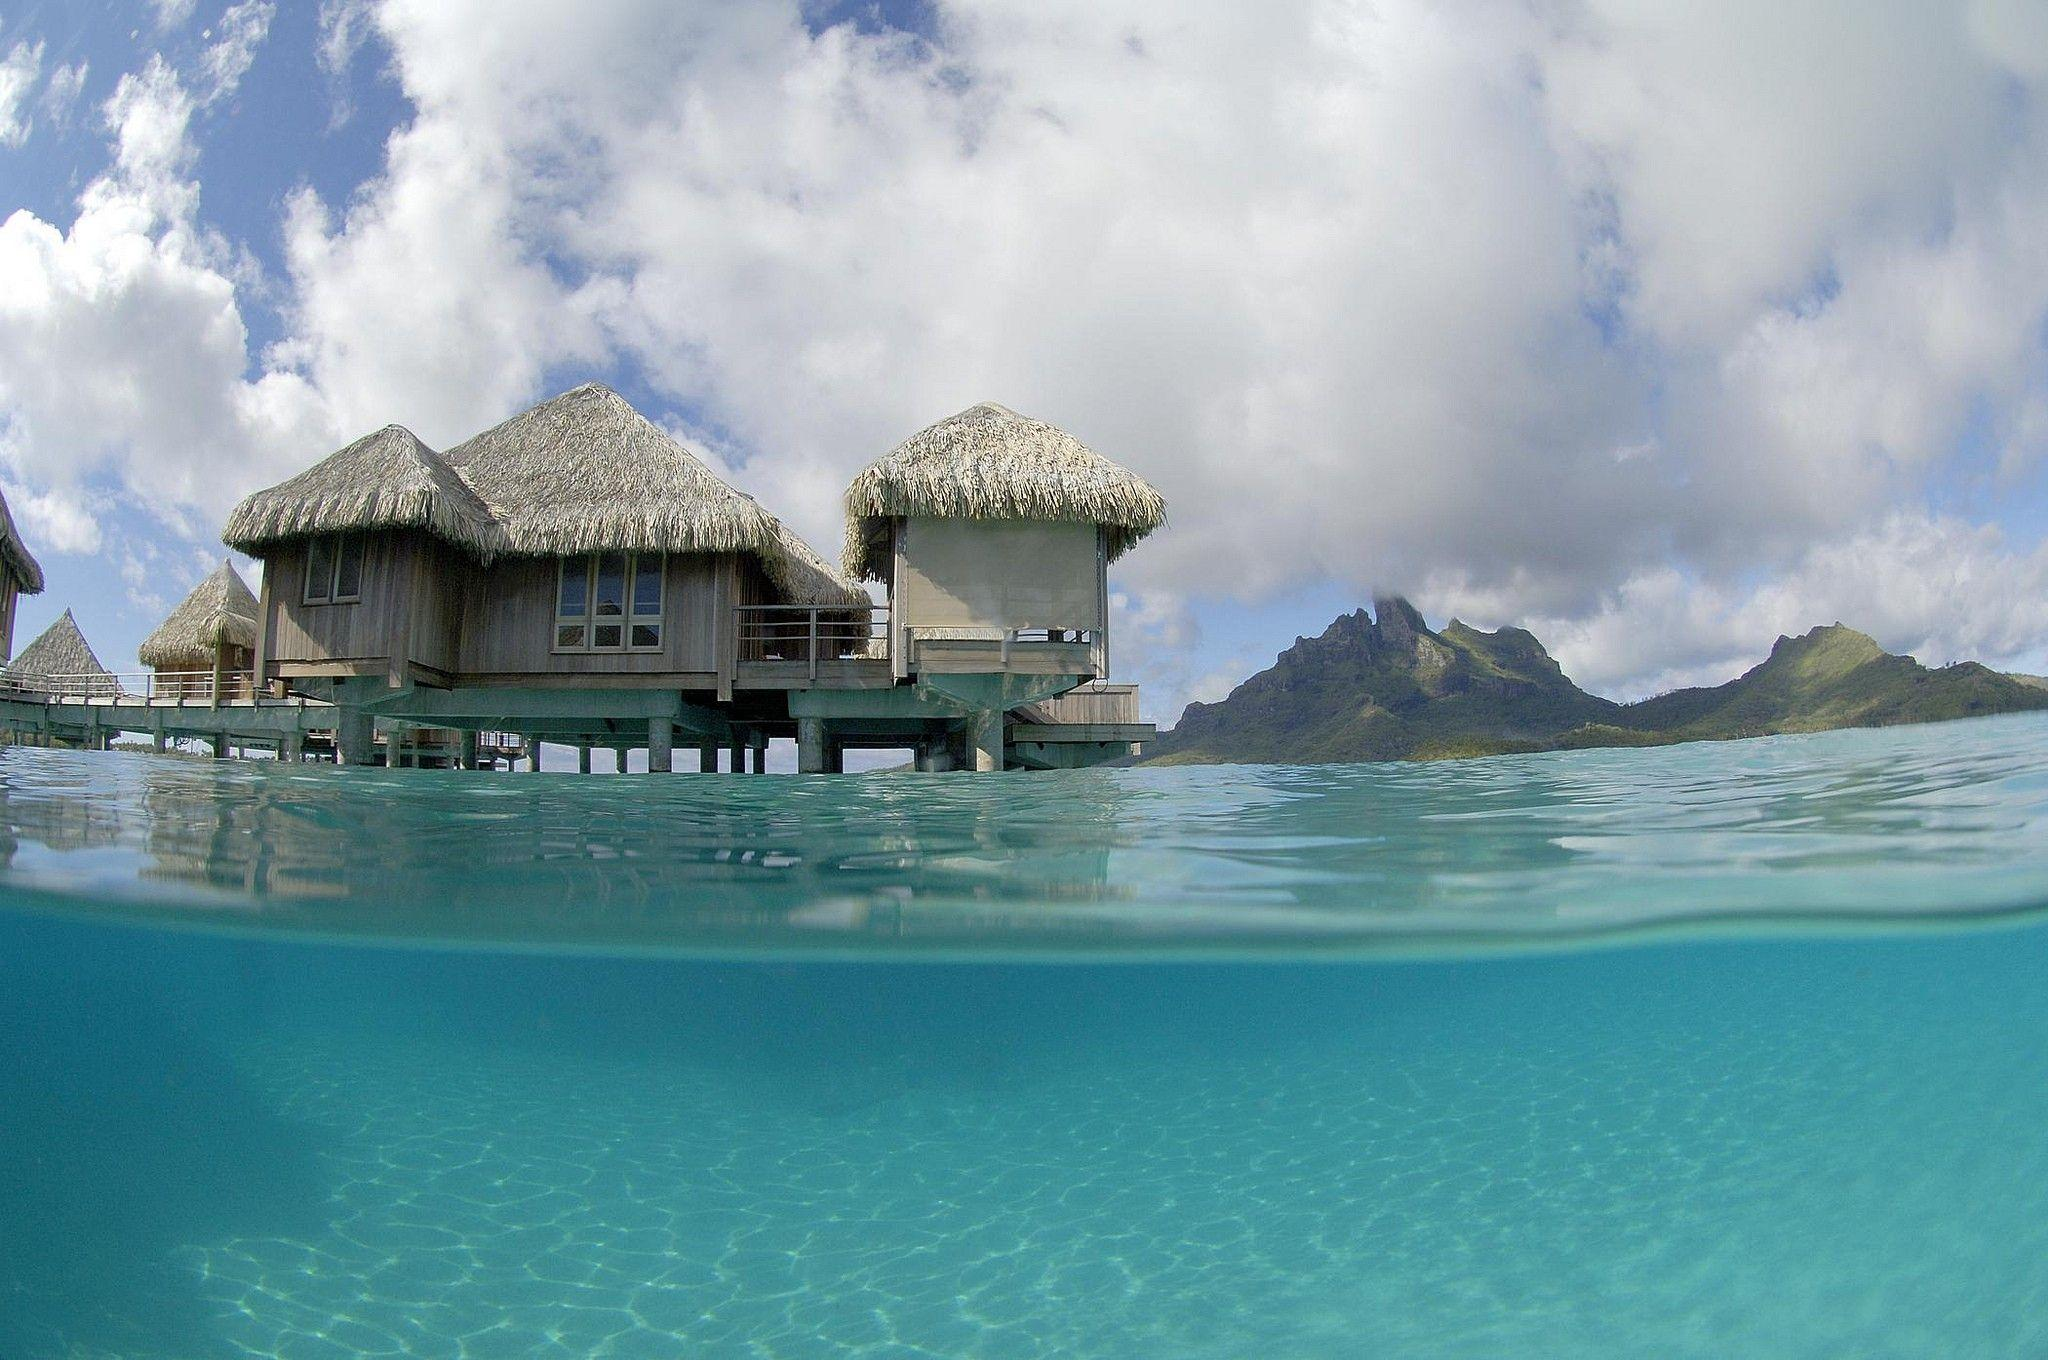 St regis bora water villa bungalow blue lagoon wallpapers